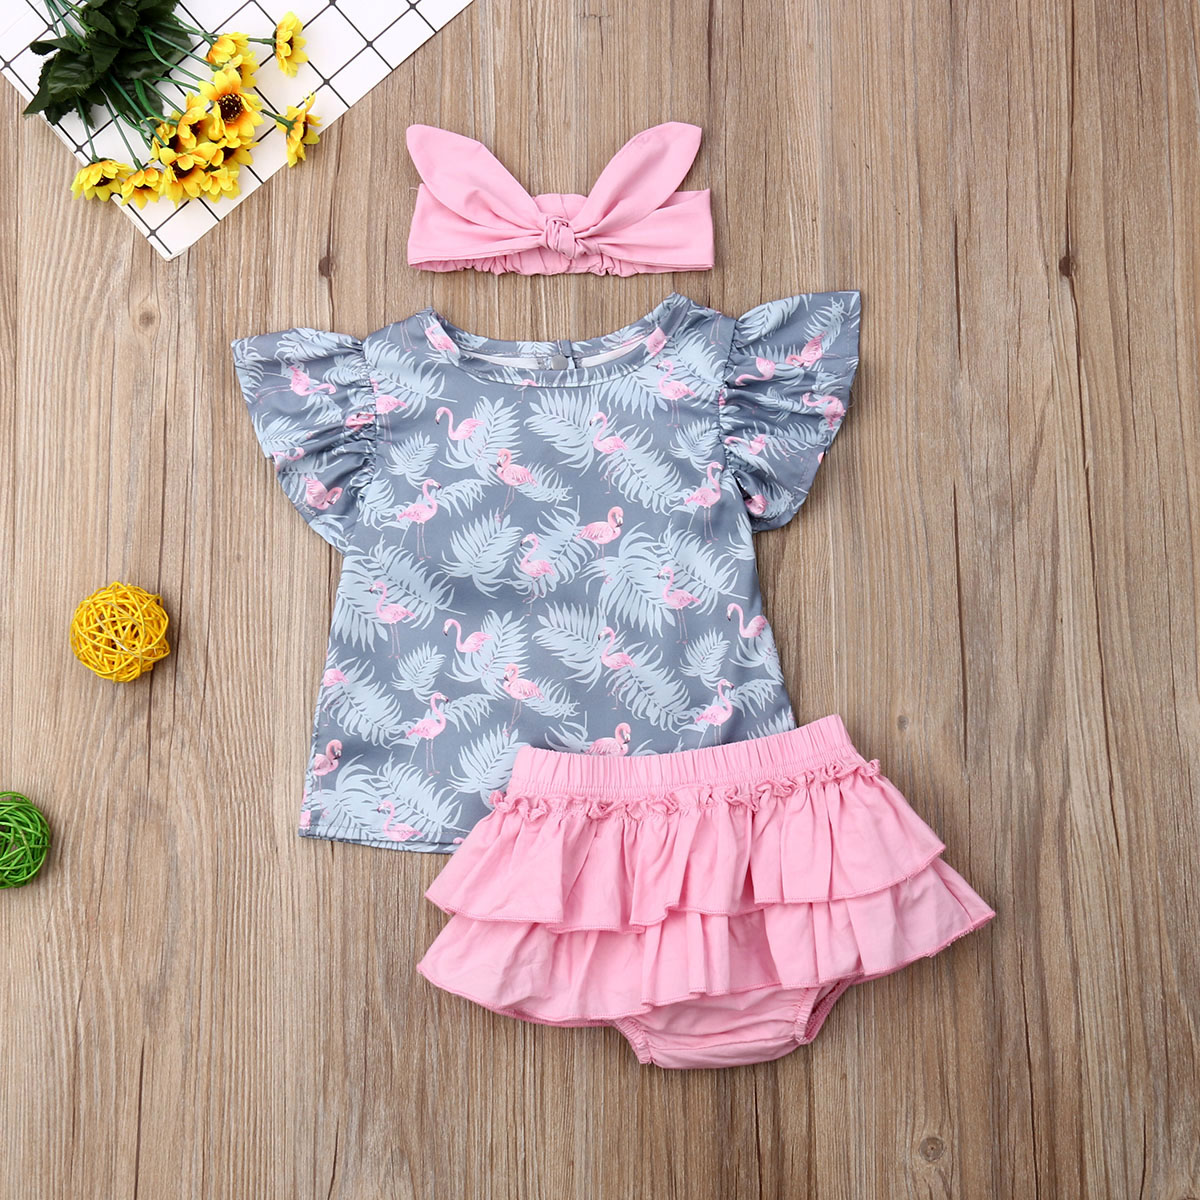 Pudcoco Newborn Baby Girl Clothes Fly Sleeve Flamingo Print Tops Ruffle Short Pants Headband 3Pcs Outfits Clothes Summer